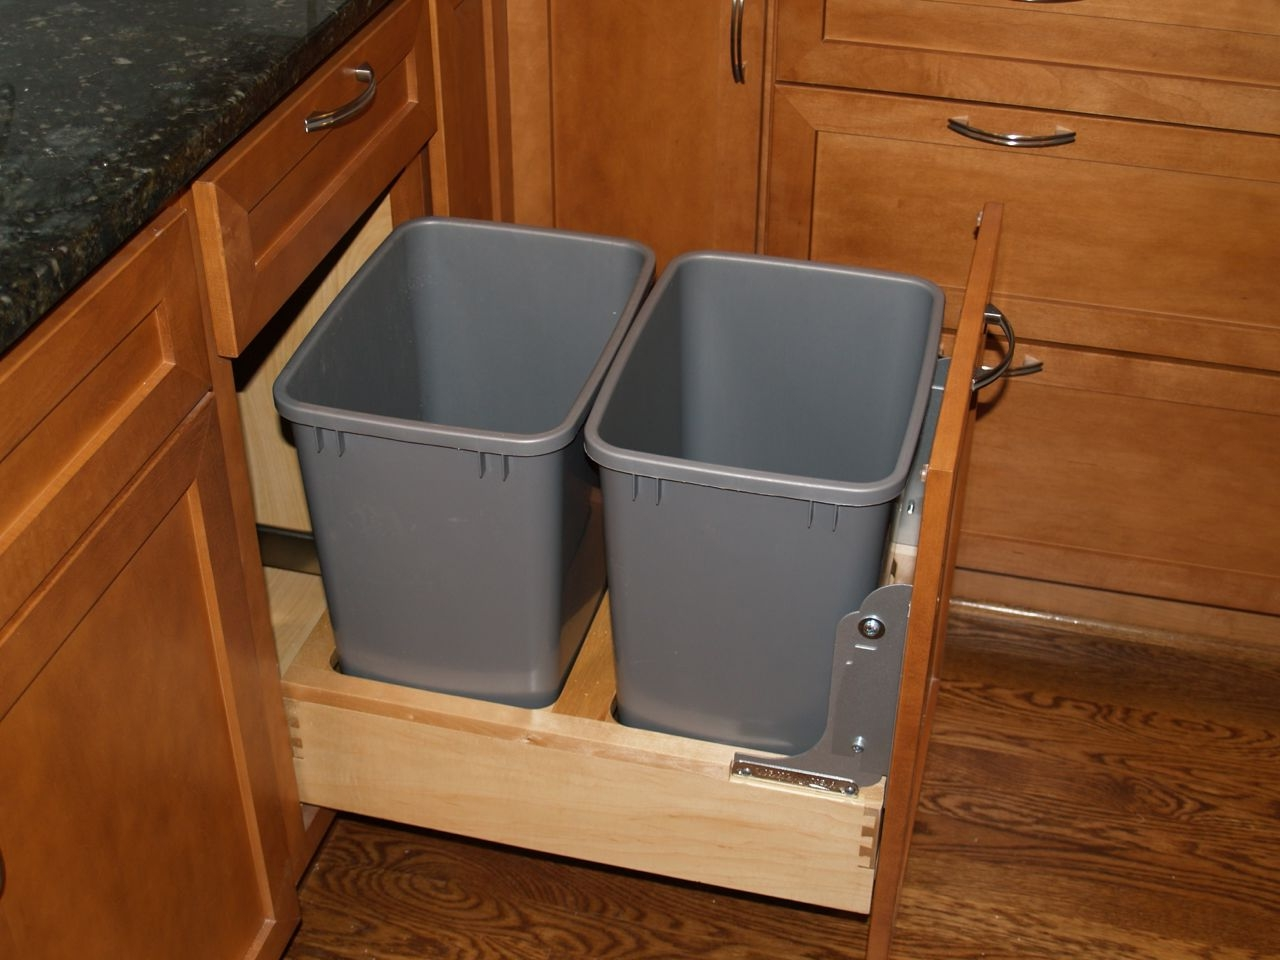 Kitchen Recycling Bins For Cabinets Kitchen Recycling Bins Kitchen Recycling Bins Argos Kitchen Recycling